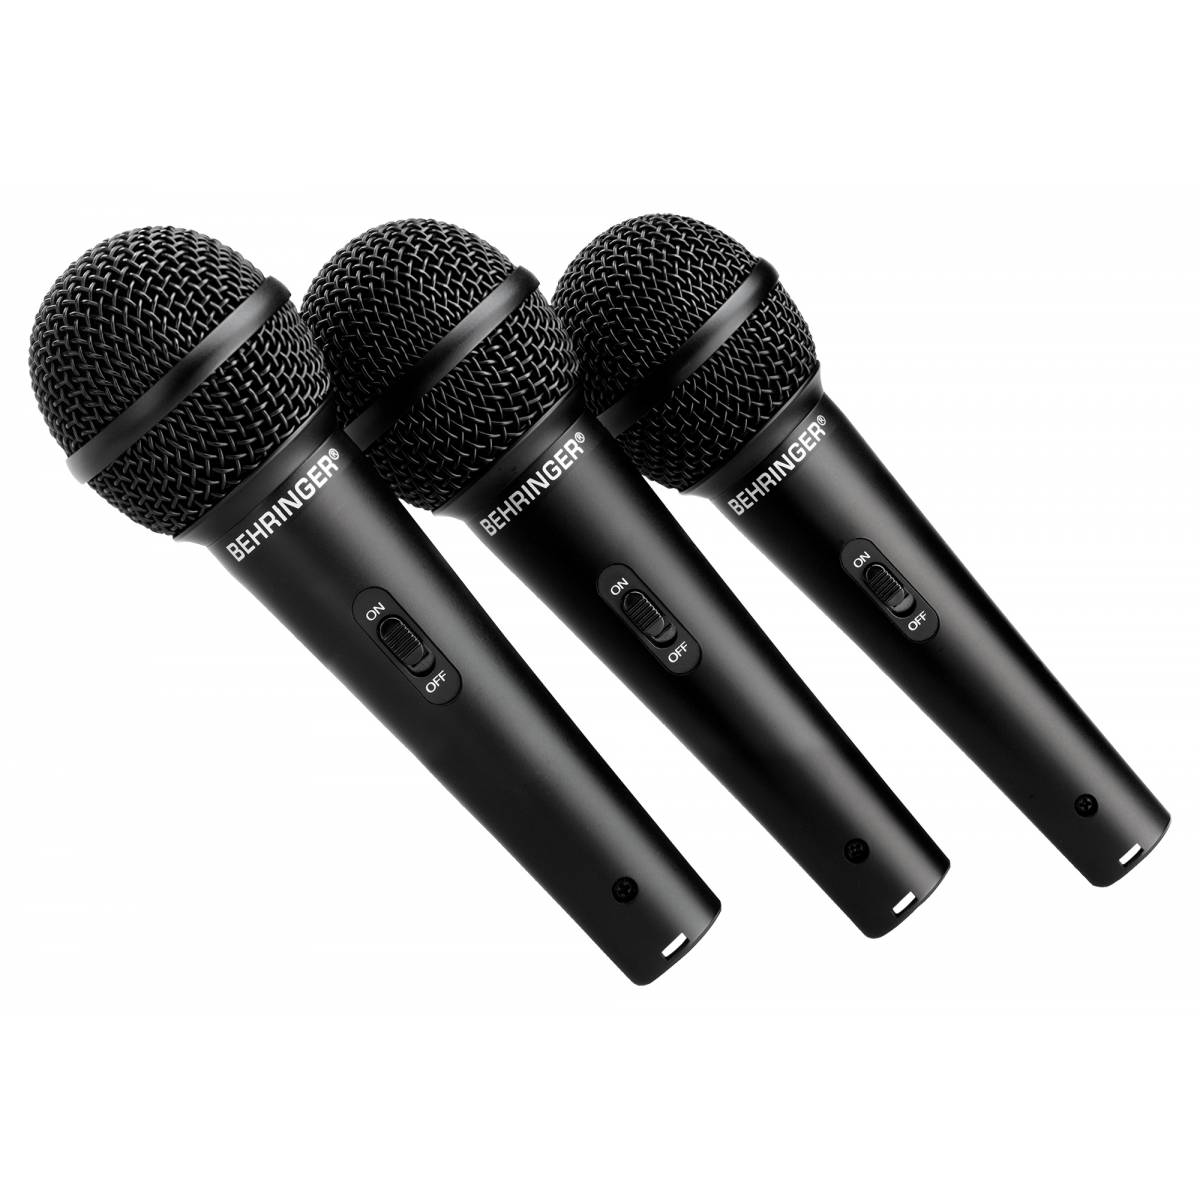 behringer xm1800s dynamic microphone 3 pack dynamic microphones from inta audio uk. Black Bedroom Furniture Sets. Home Design Ideas